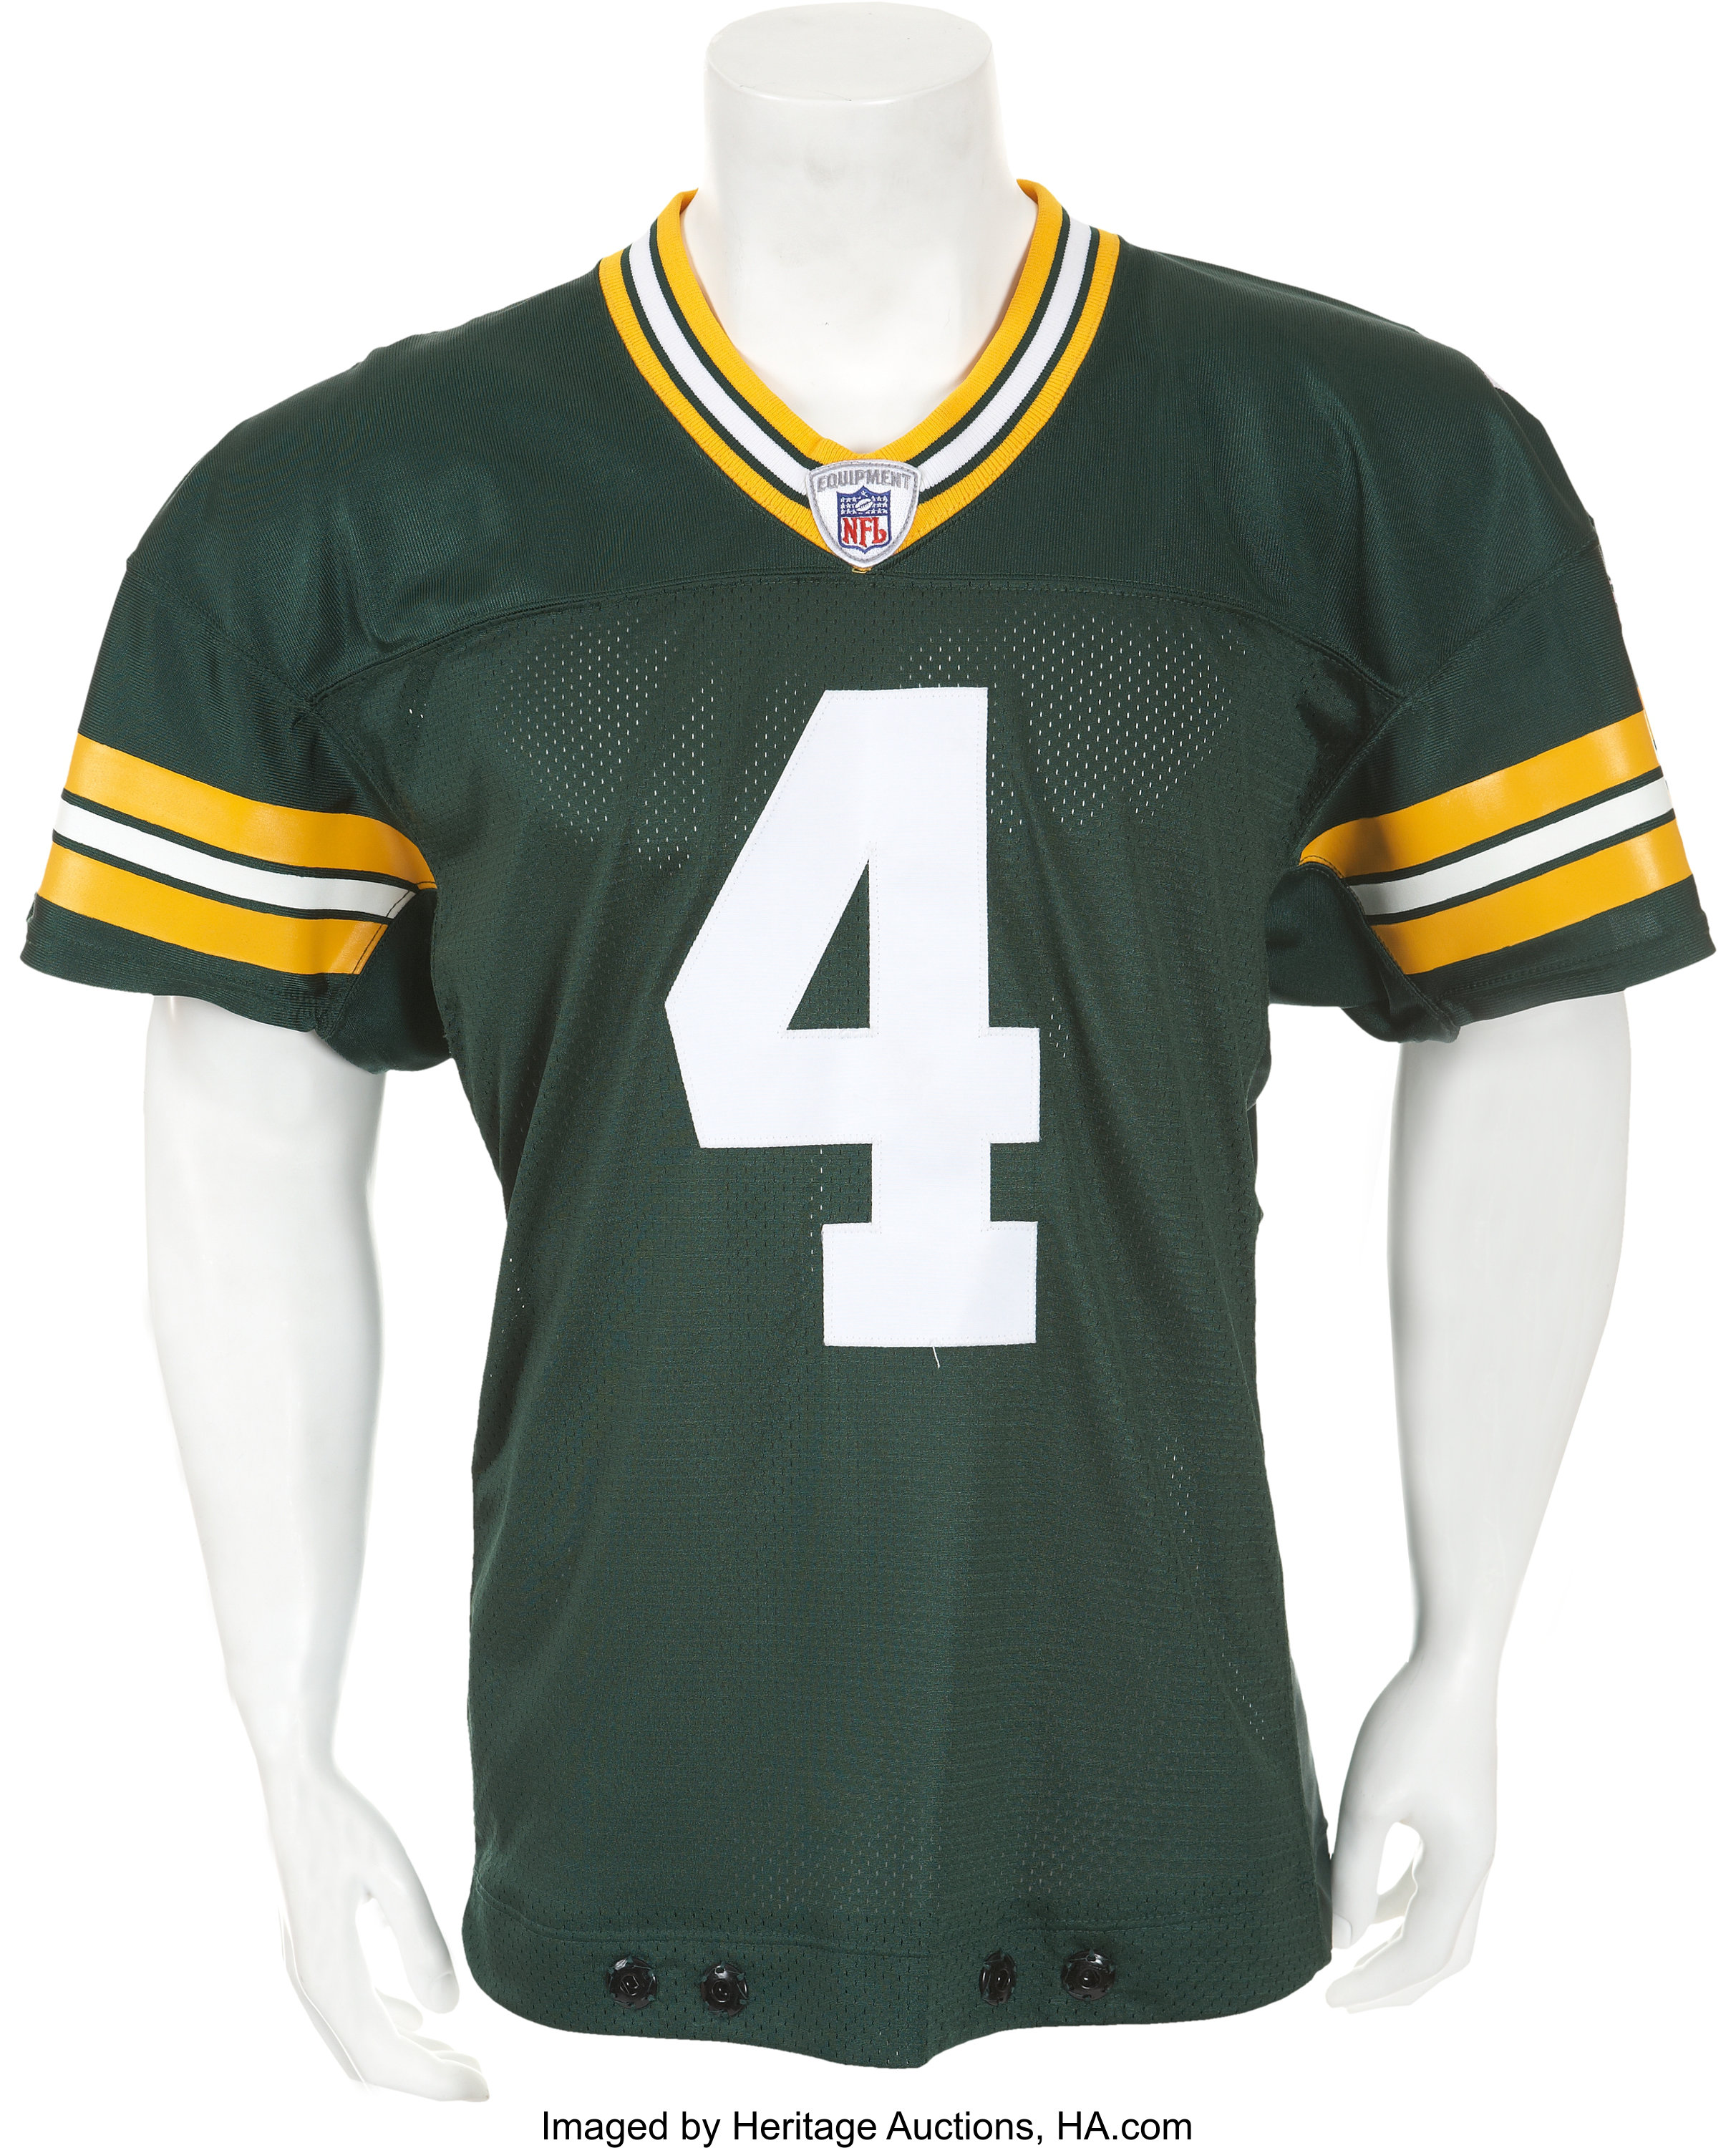 separation shoes e74db 0114e 2003 Brett Favre Game Worn Green Bay Packers Jersey - Used ...